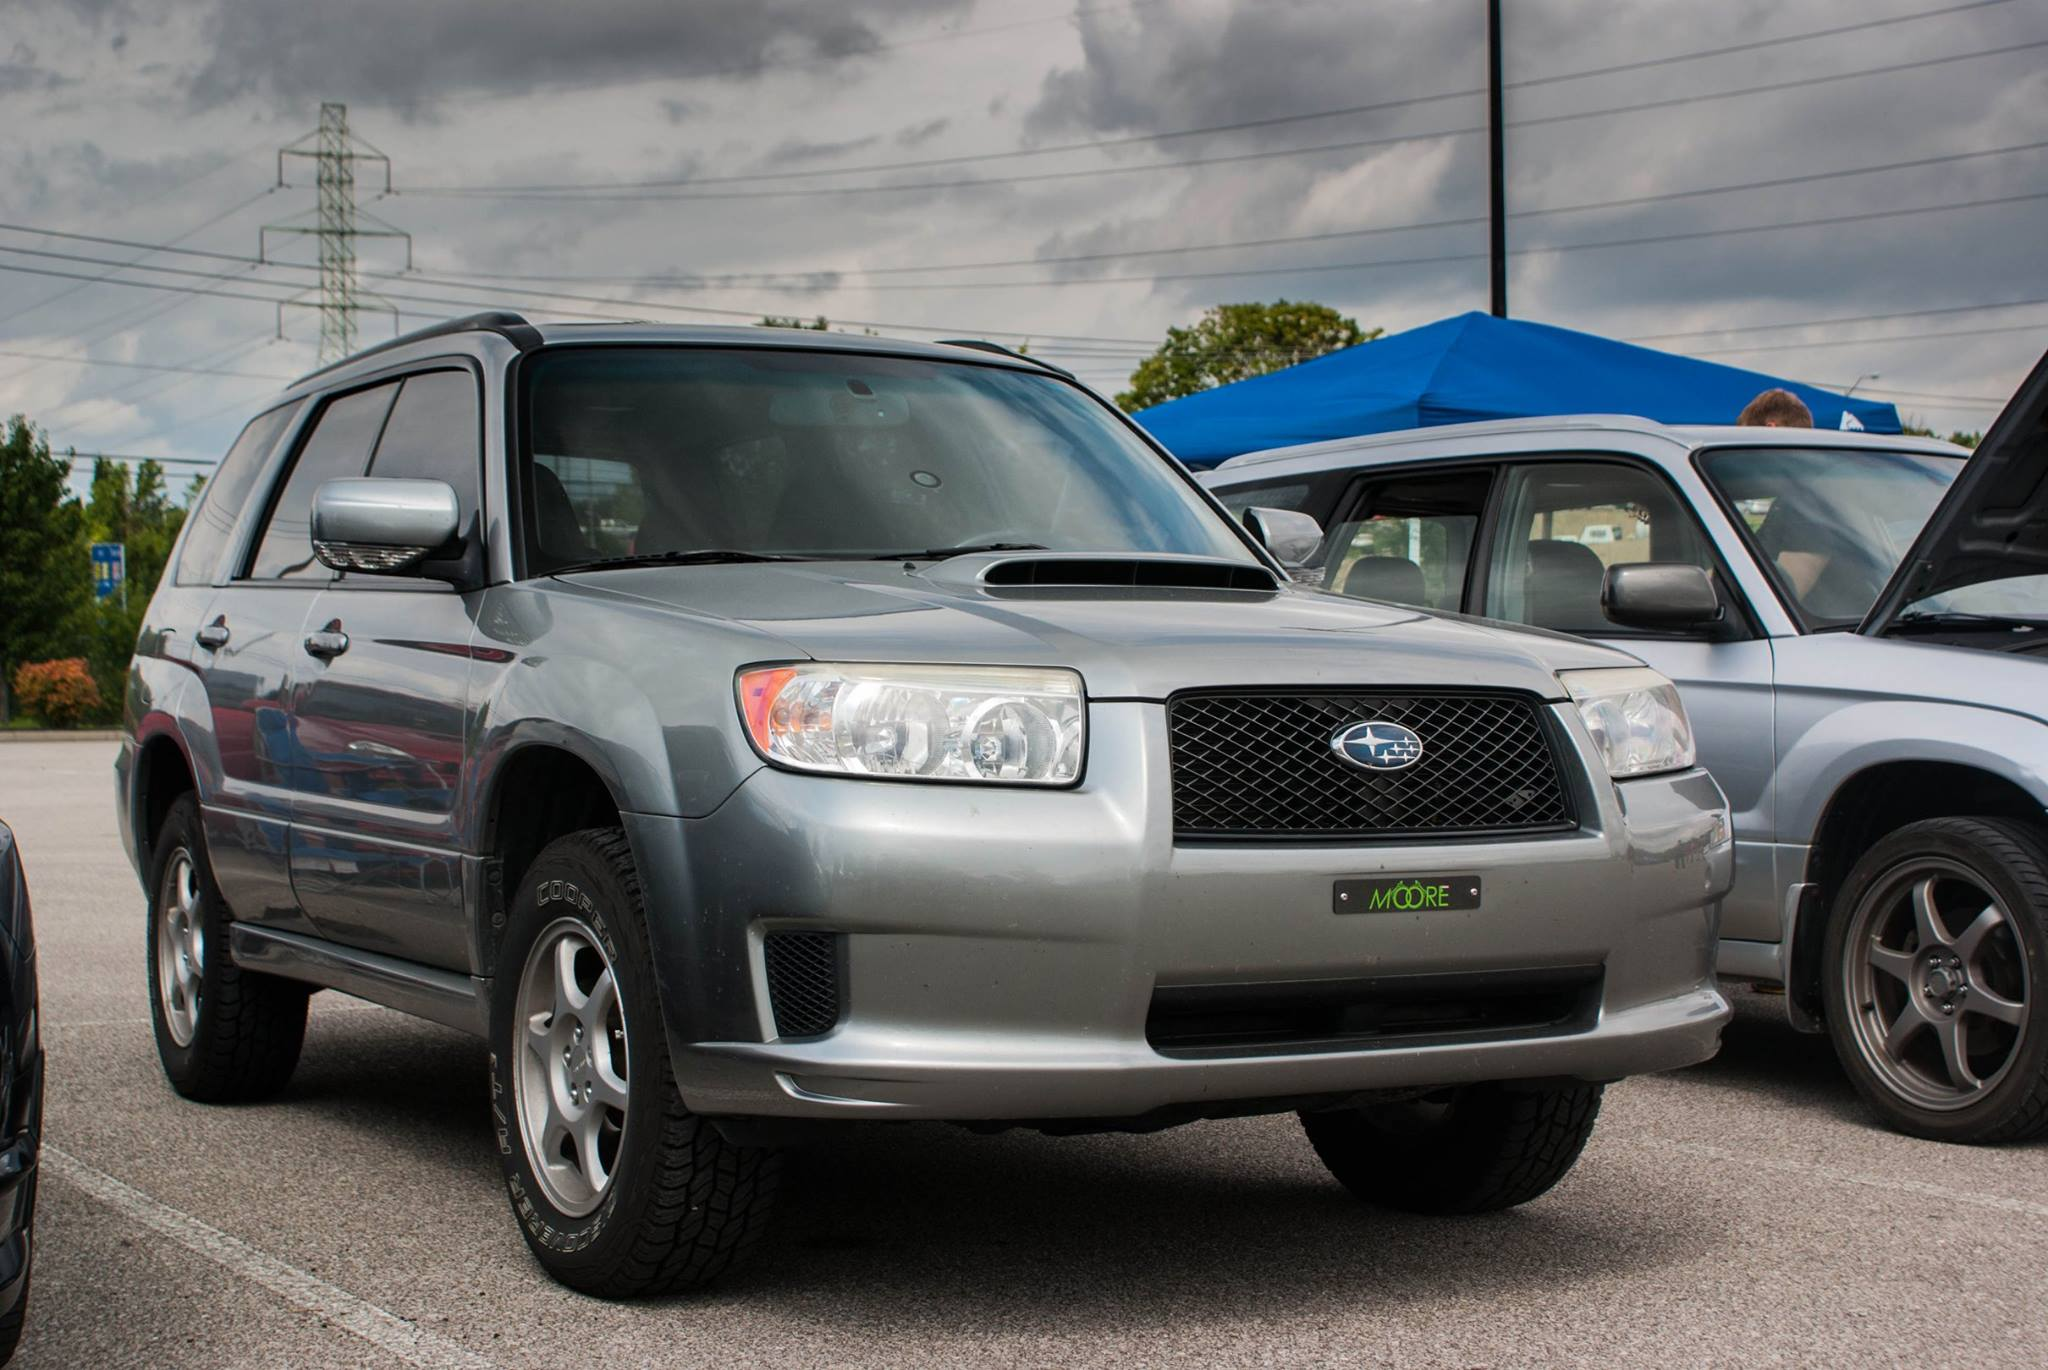 Fs for sale 2007 fxt sports ugm 13500 subaru forester no longer for sale vanachro Choice Image